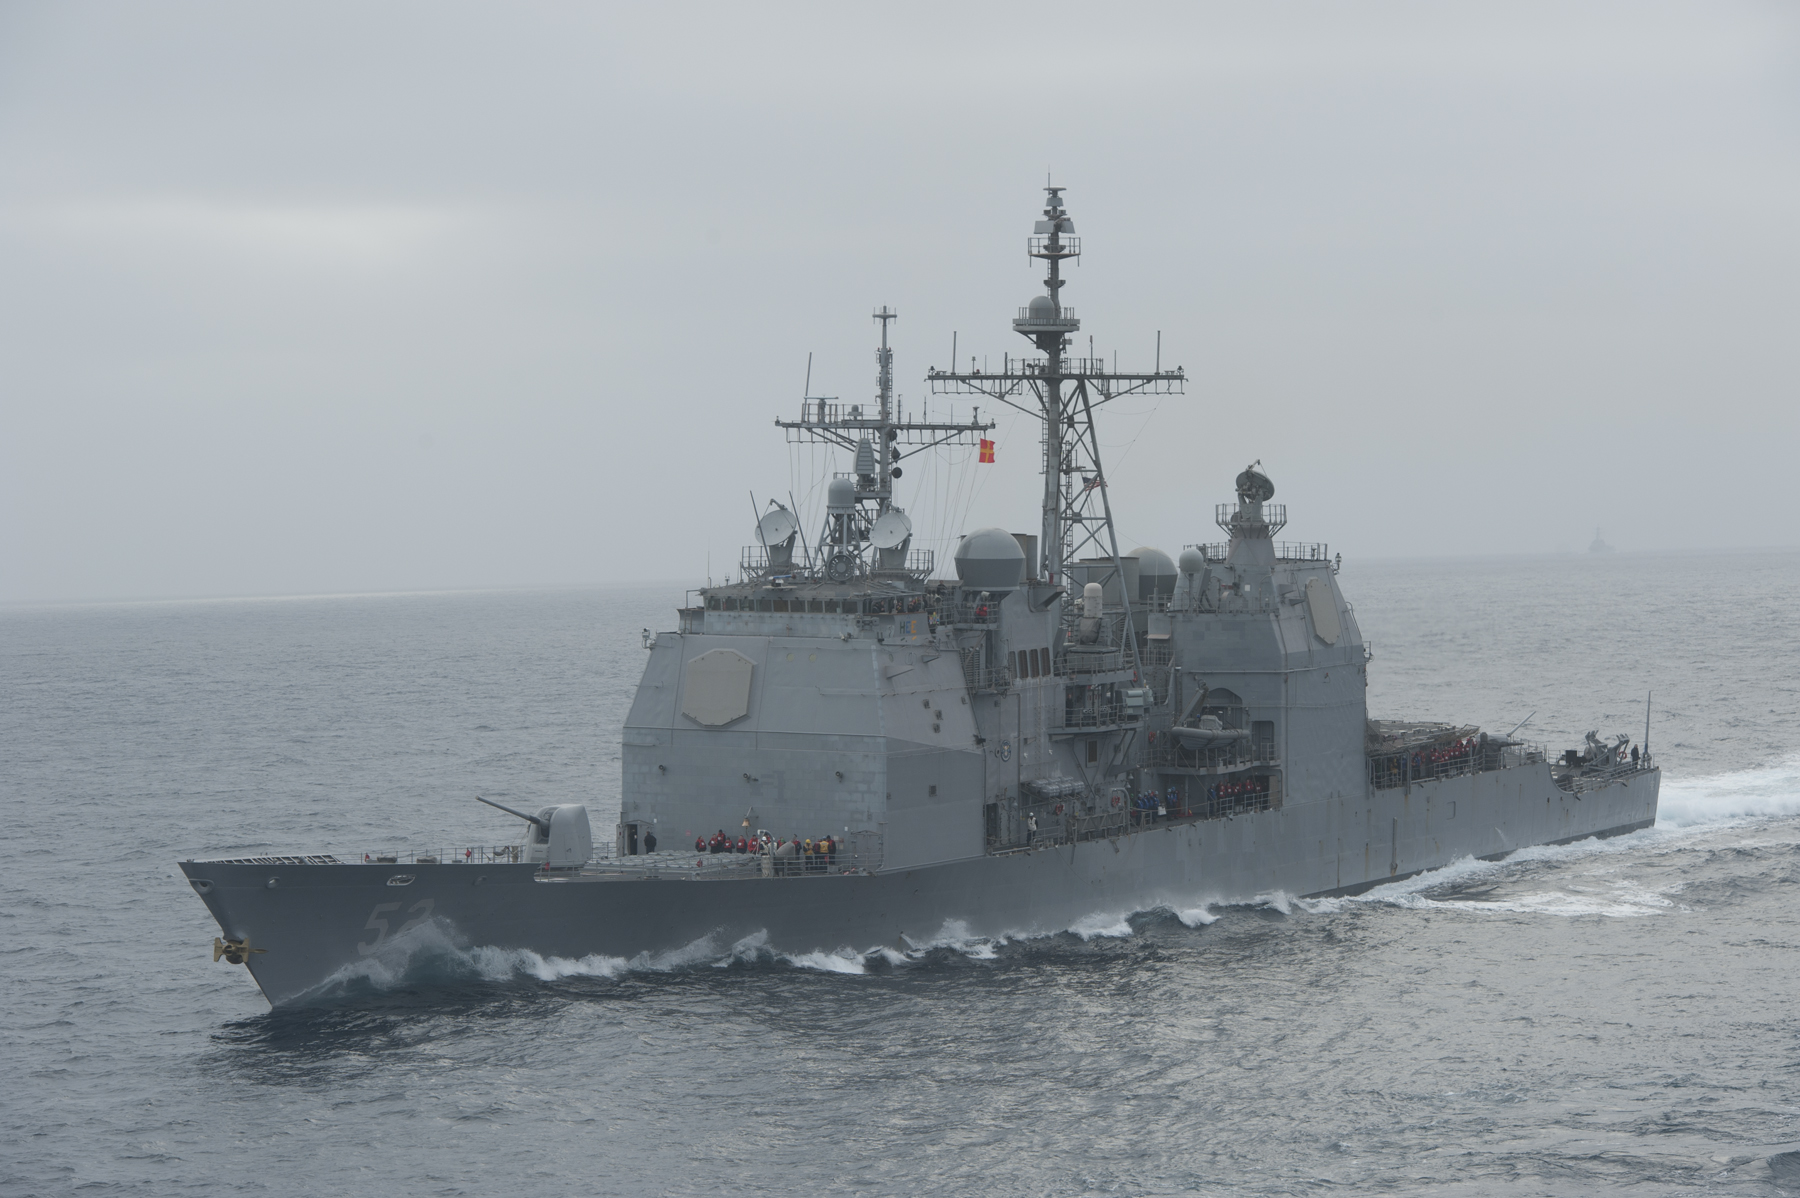 Ticonderoga-class cruiser USS Bunker Hill (CG-52) on May 28, 2014. US Navy Photo